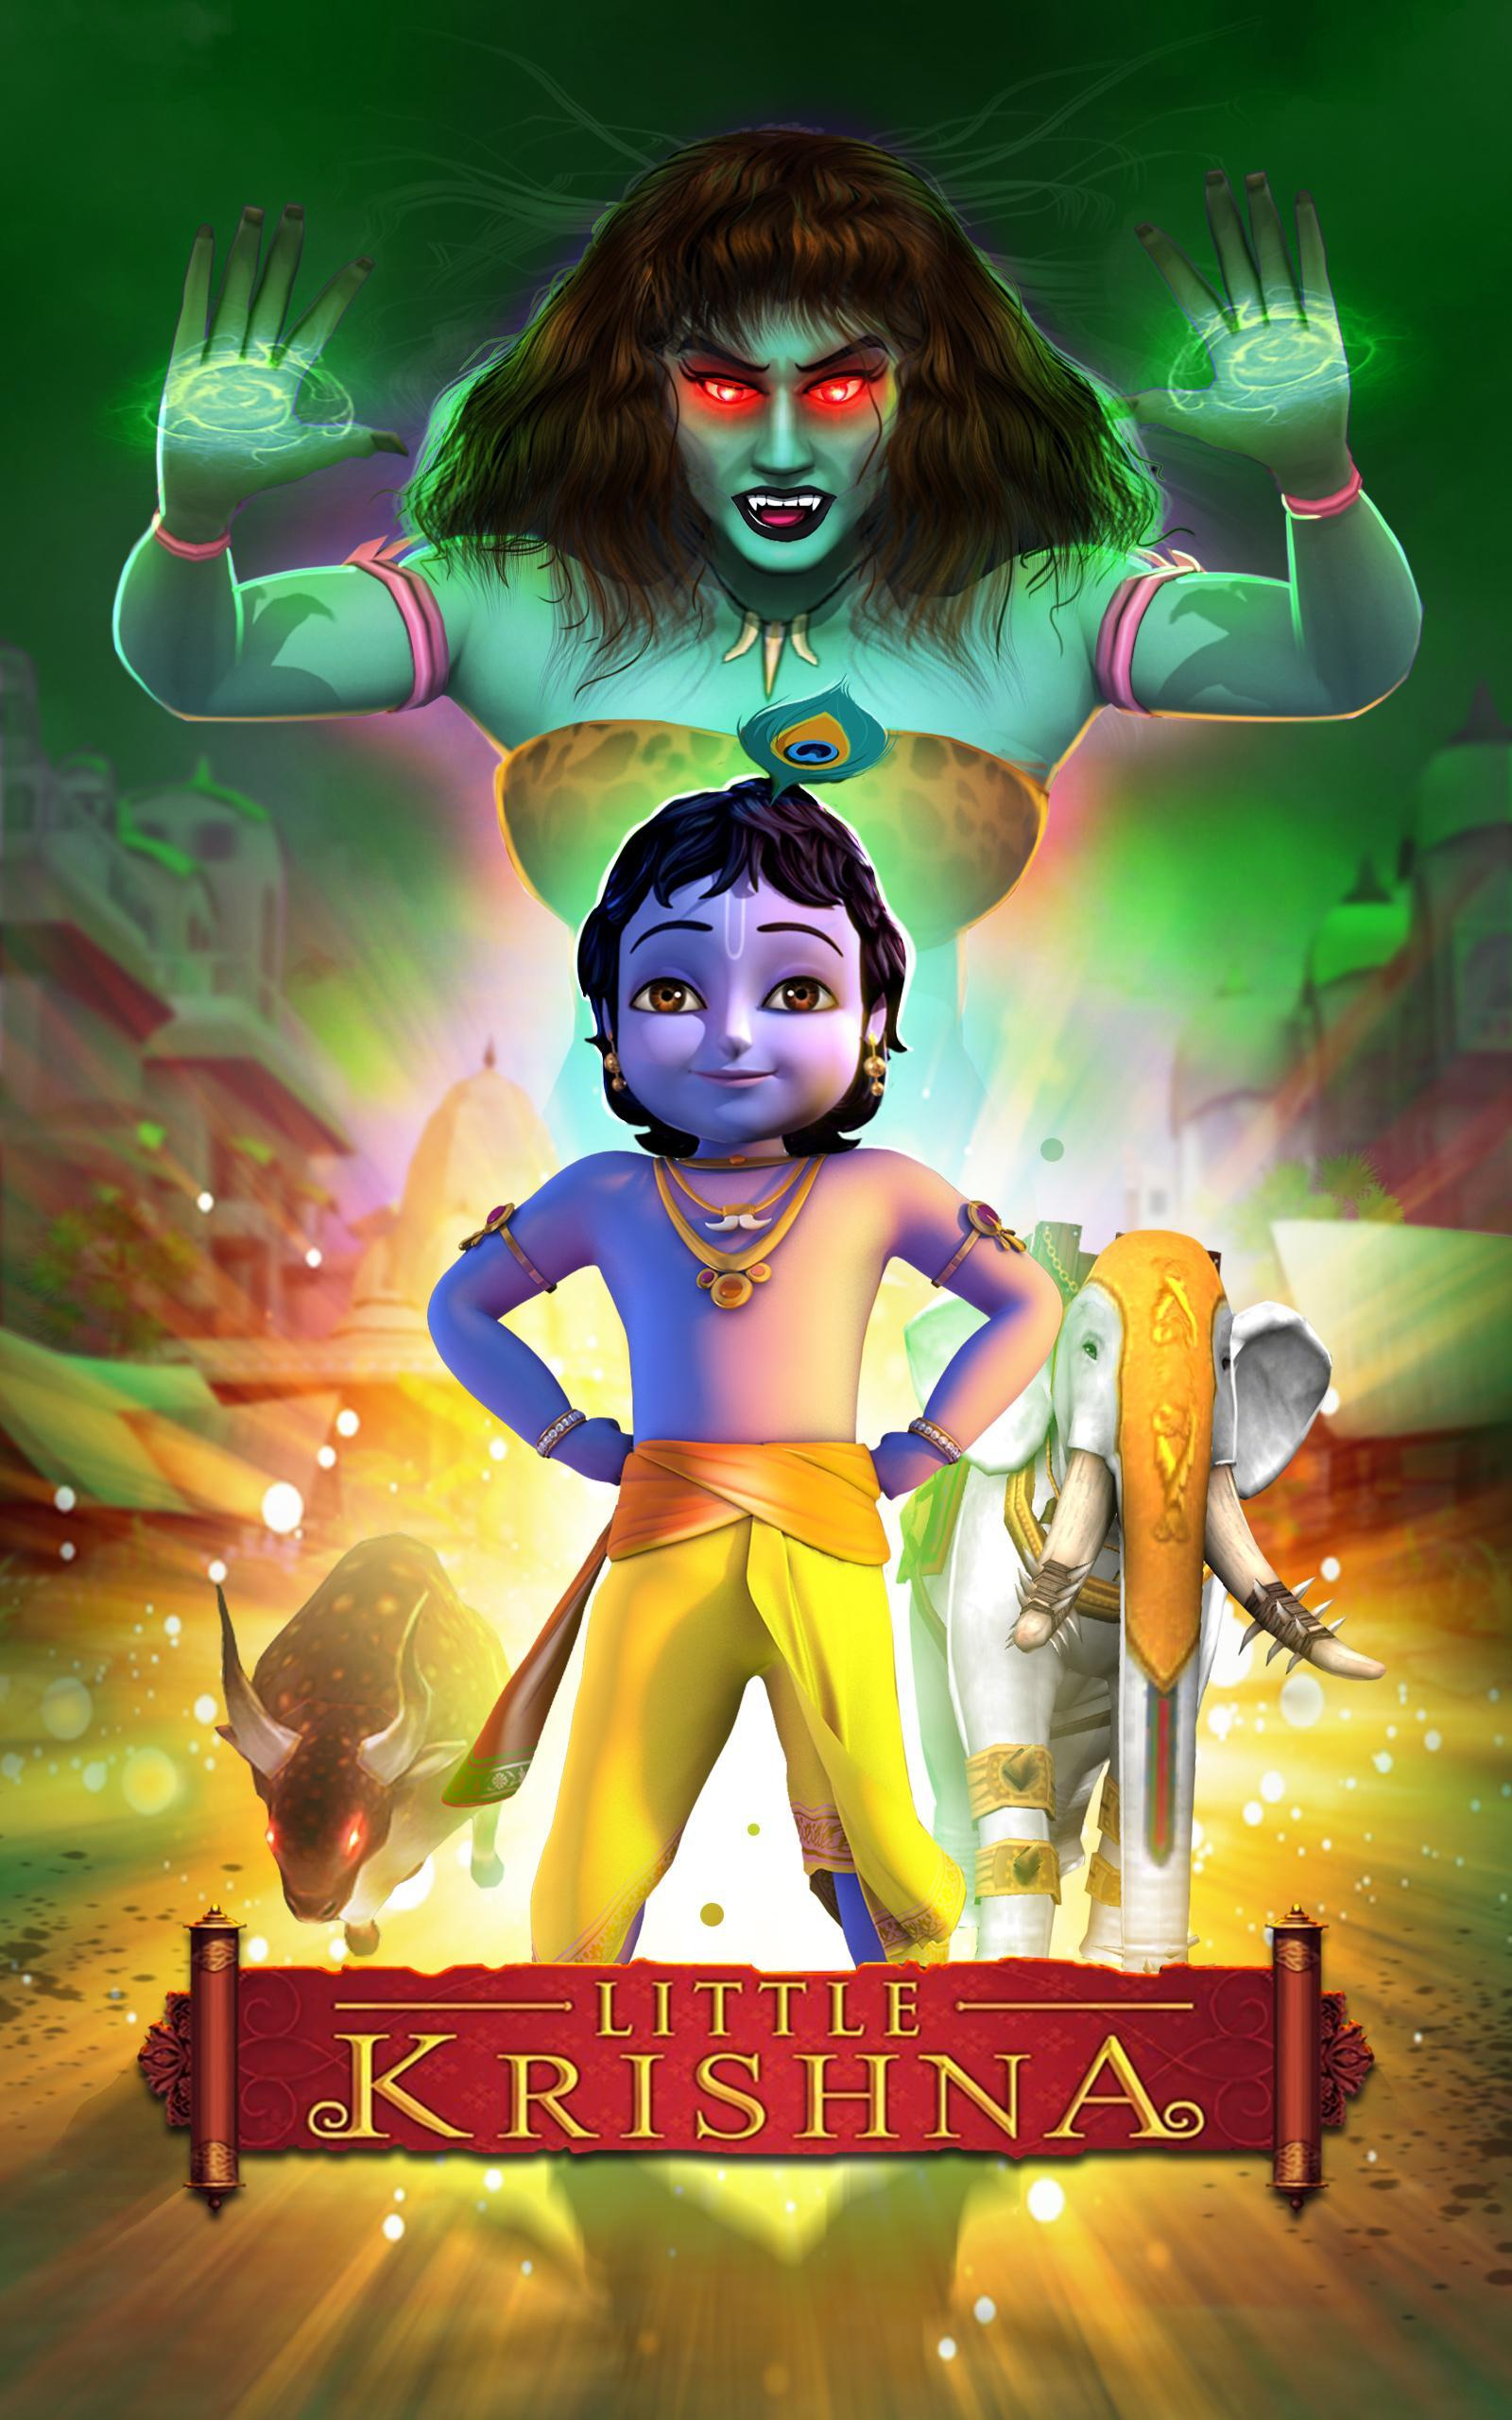 Little Krishna for Android - APK Download